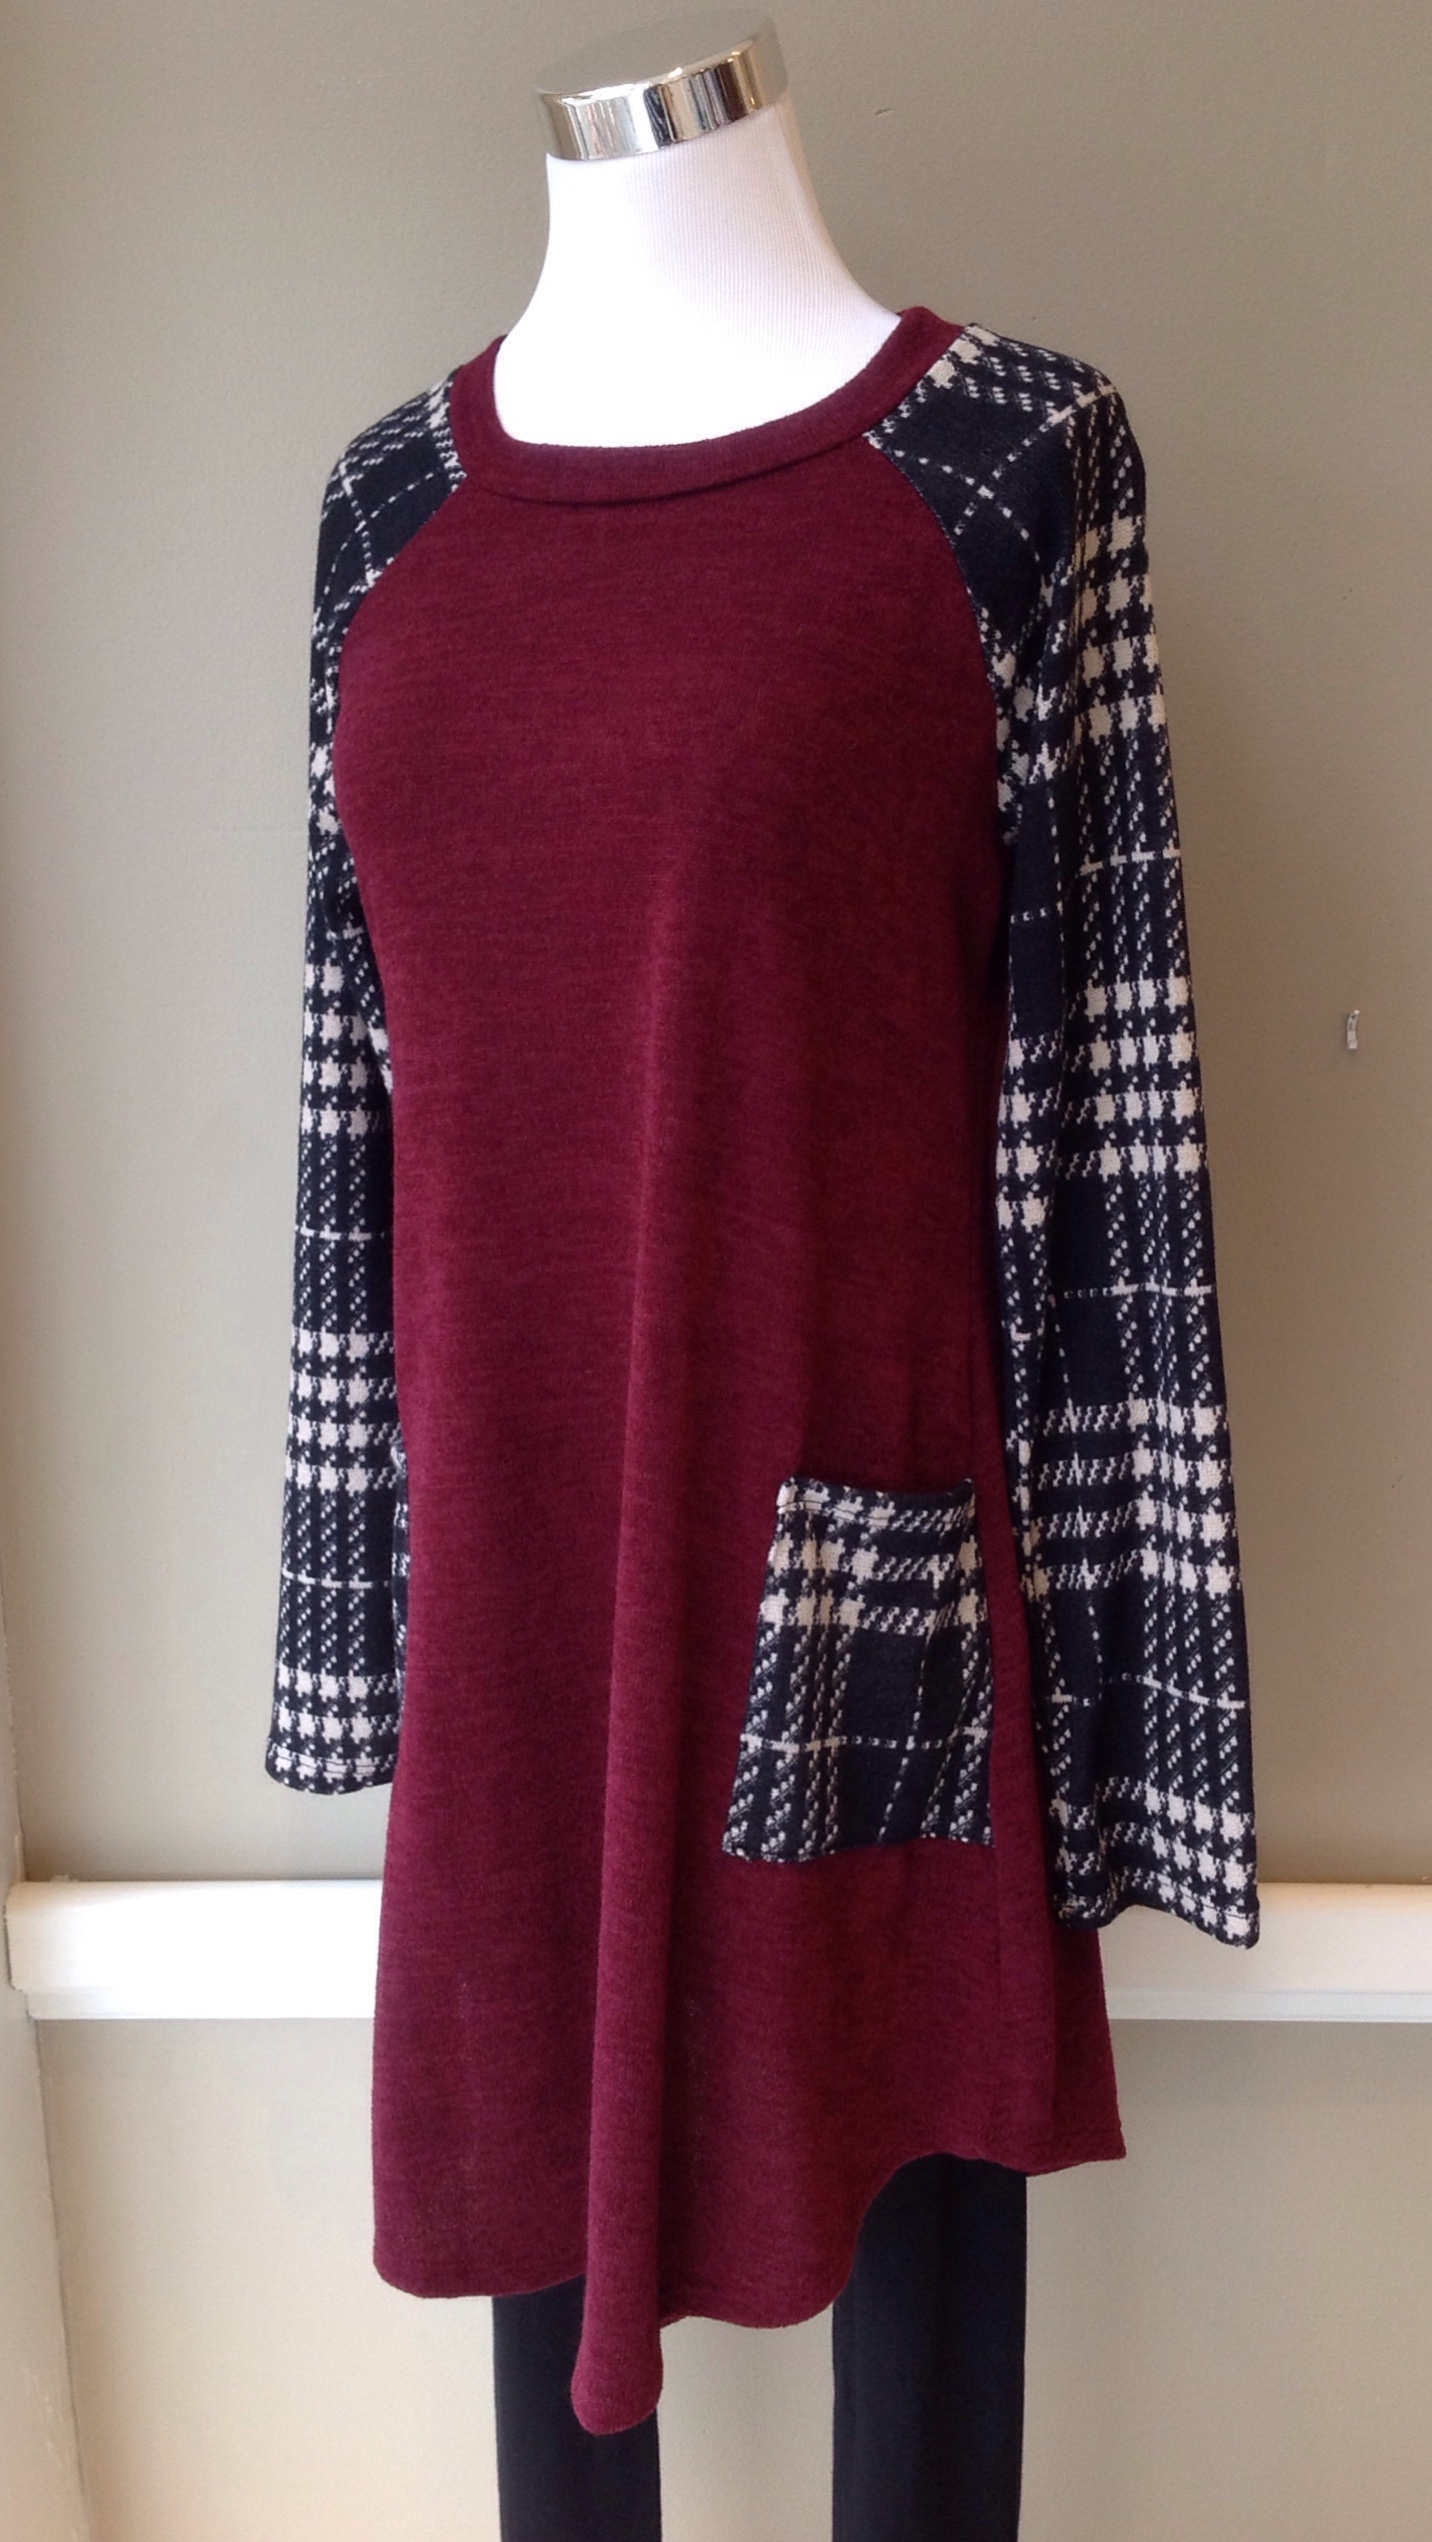 Sweater knit tunic with patch pockets in wine/black plaid, $38